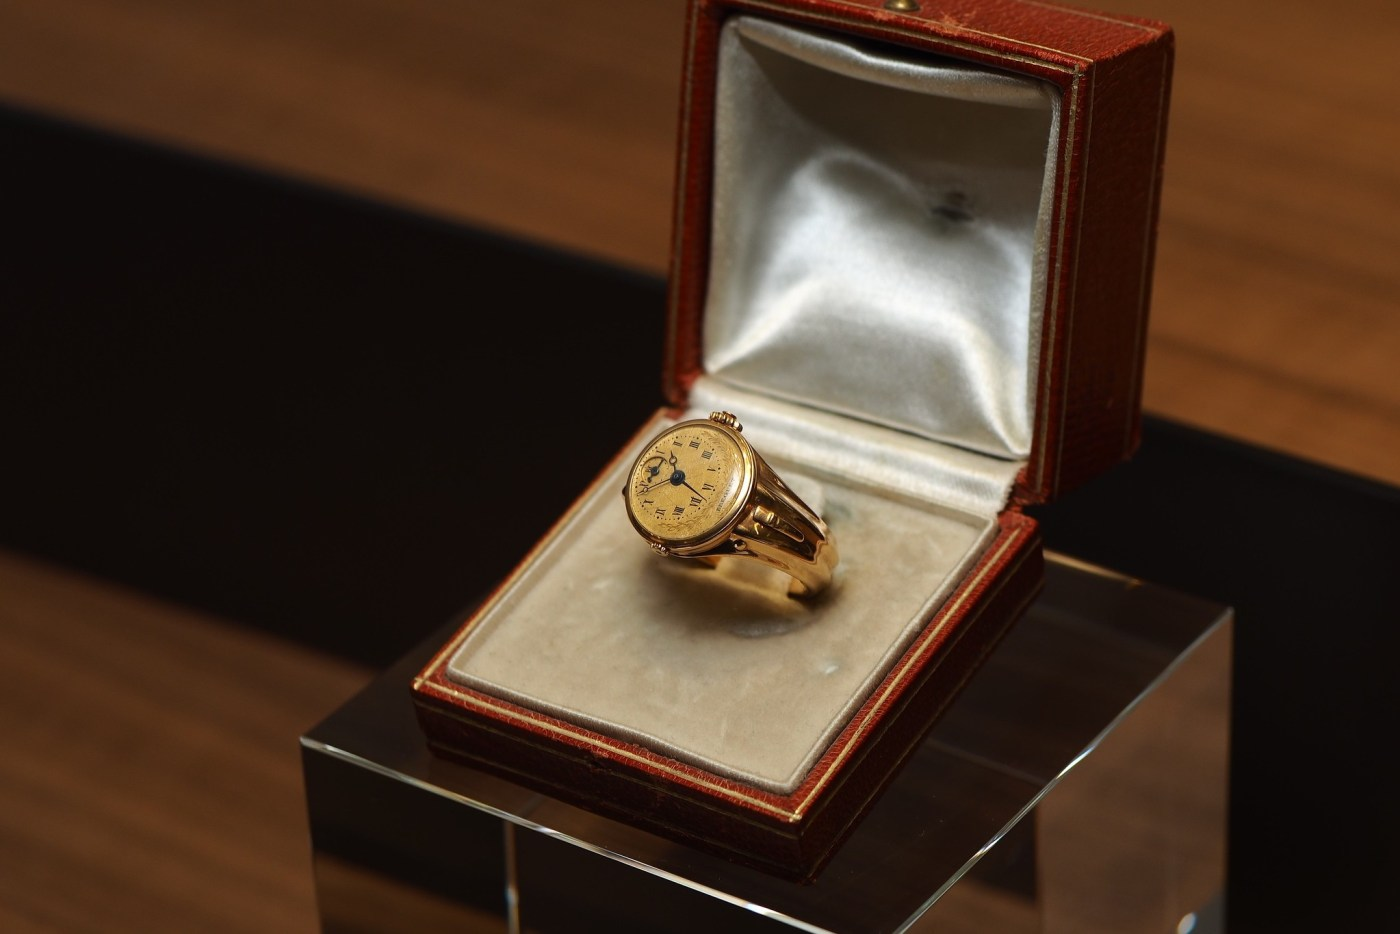 Breguet No. 180 Gold Ring Watch